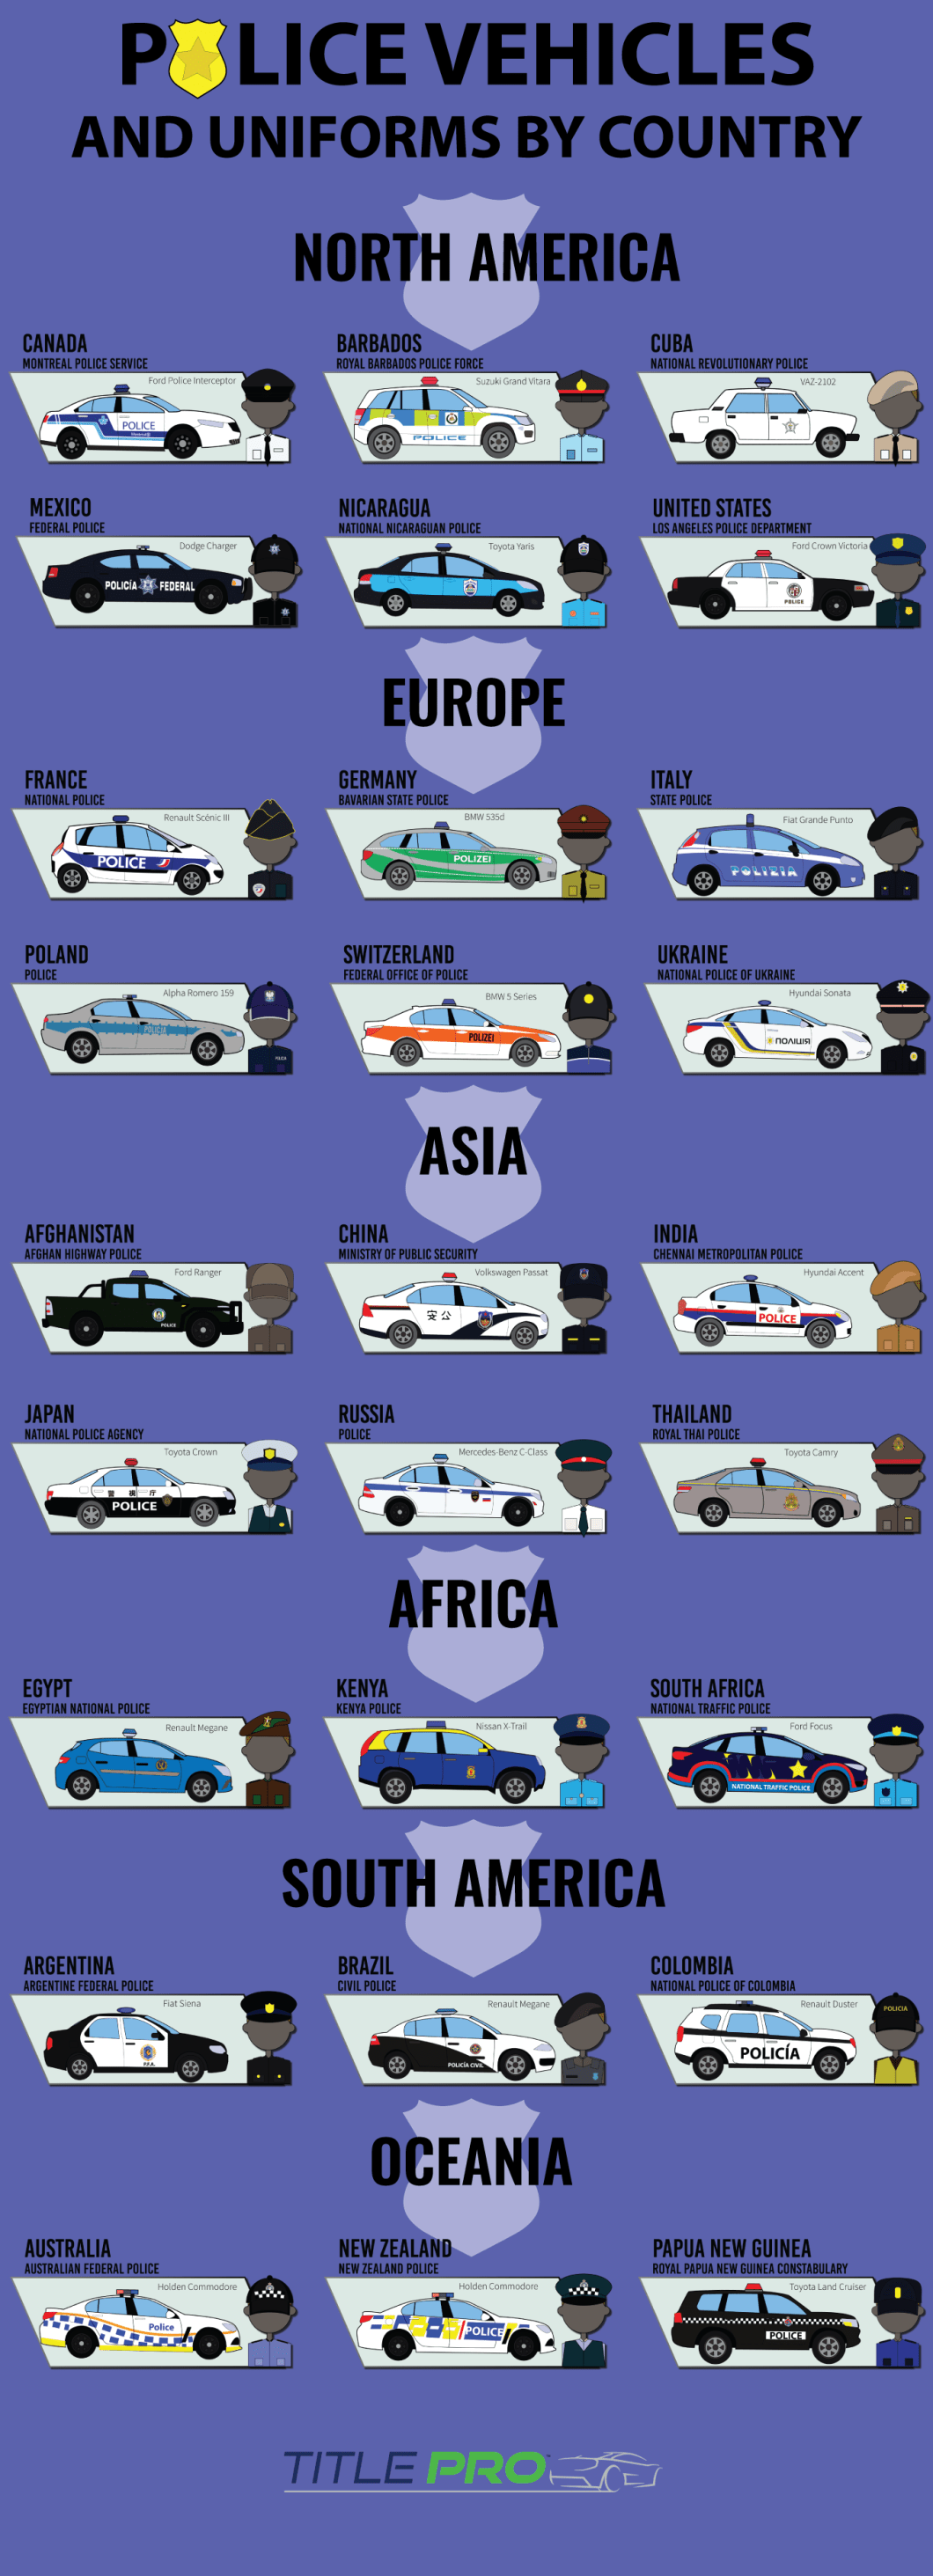 The Police Look: Vehicles and Uniforms from Around the World - Infographic